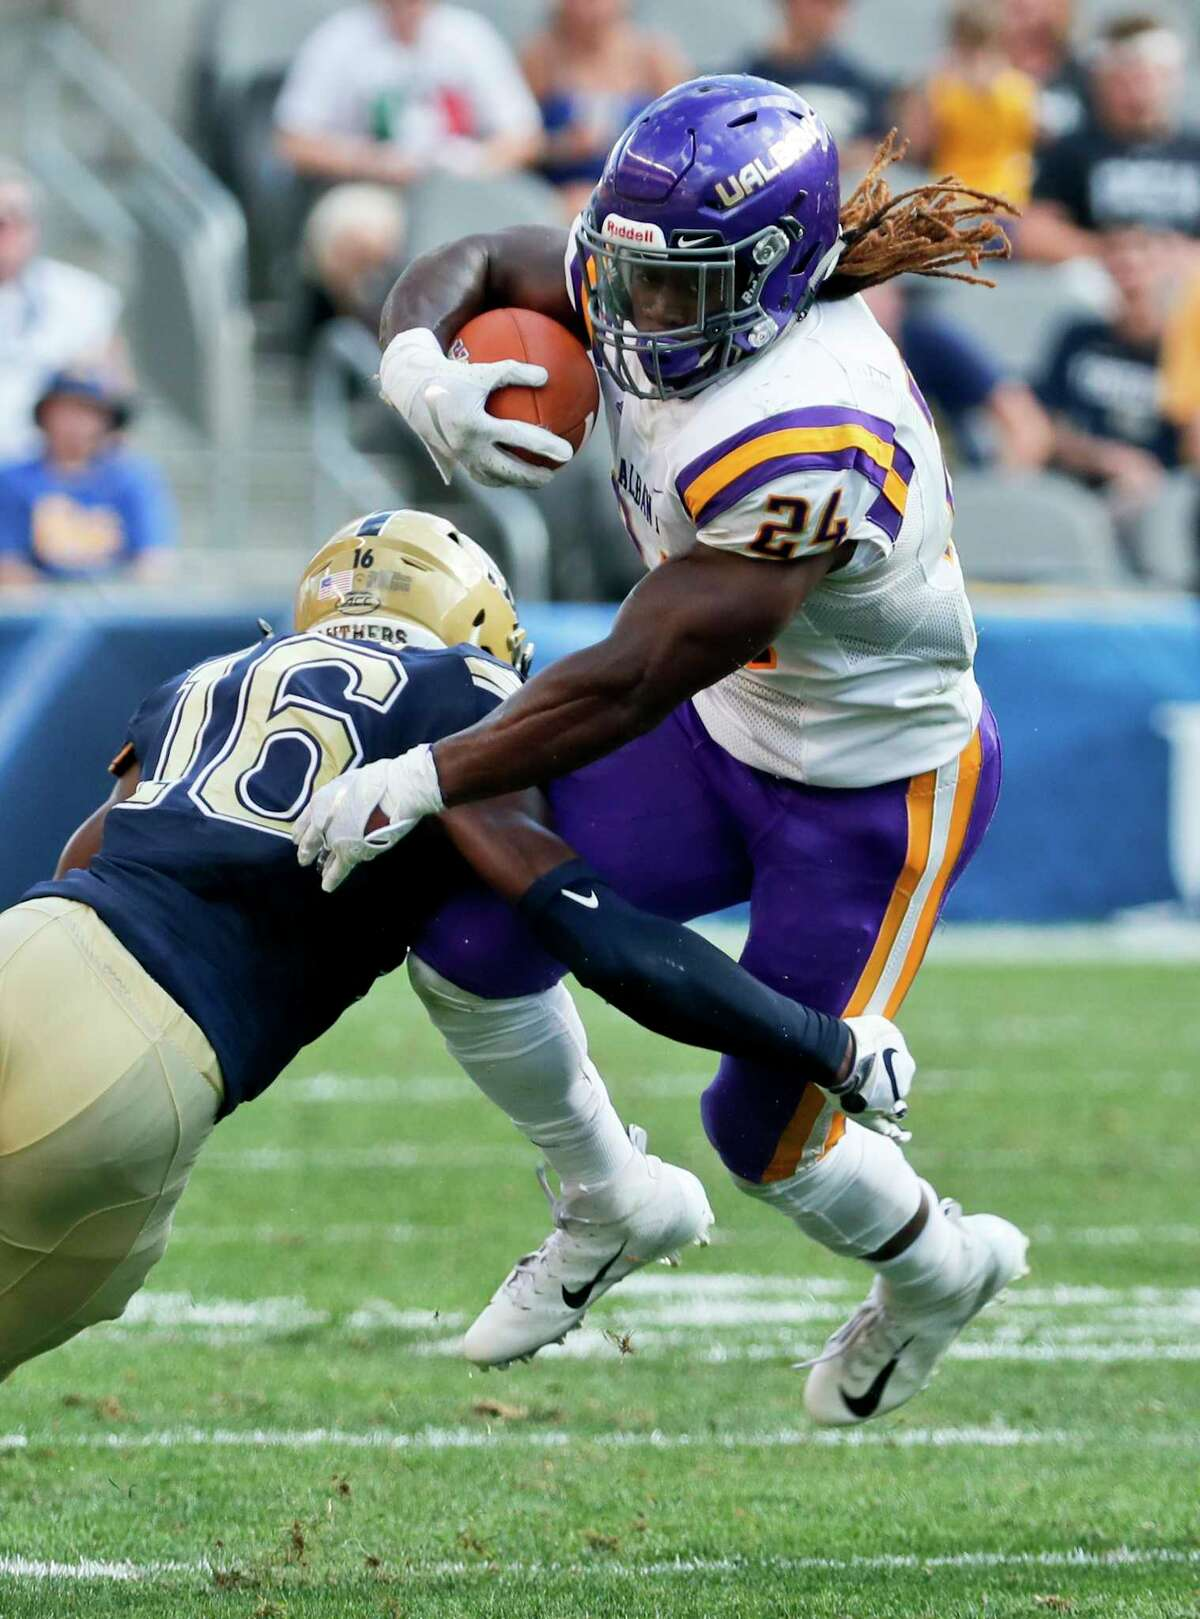 Albany running back Elijah Ibitokun-Hanks (24) tries to get past Pittsburgh defensive back Damarri Mathis (16) on a run in the first half of an NCAA football game, Saturday, Sept. 1, 2018, in Pittsburgh. (AP Photo/Keith Srakocic)